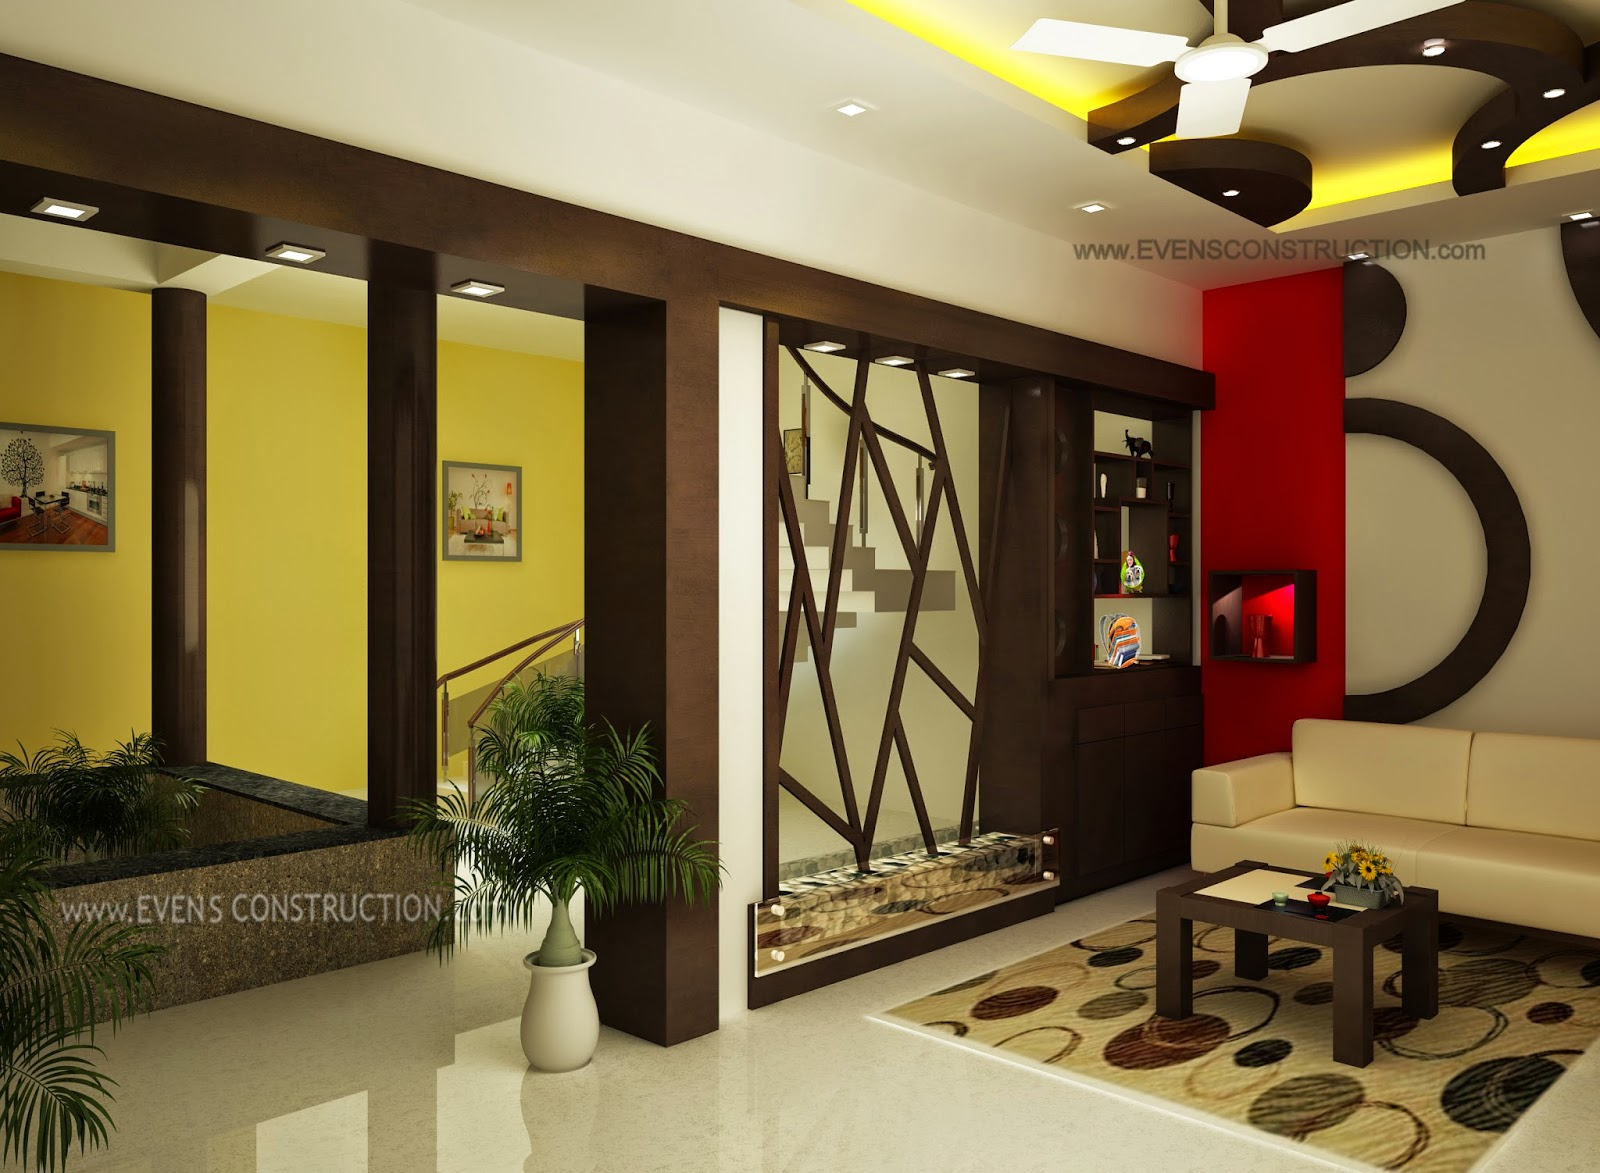 Evens construction pvt ltd january 2015 for Living room partition